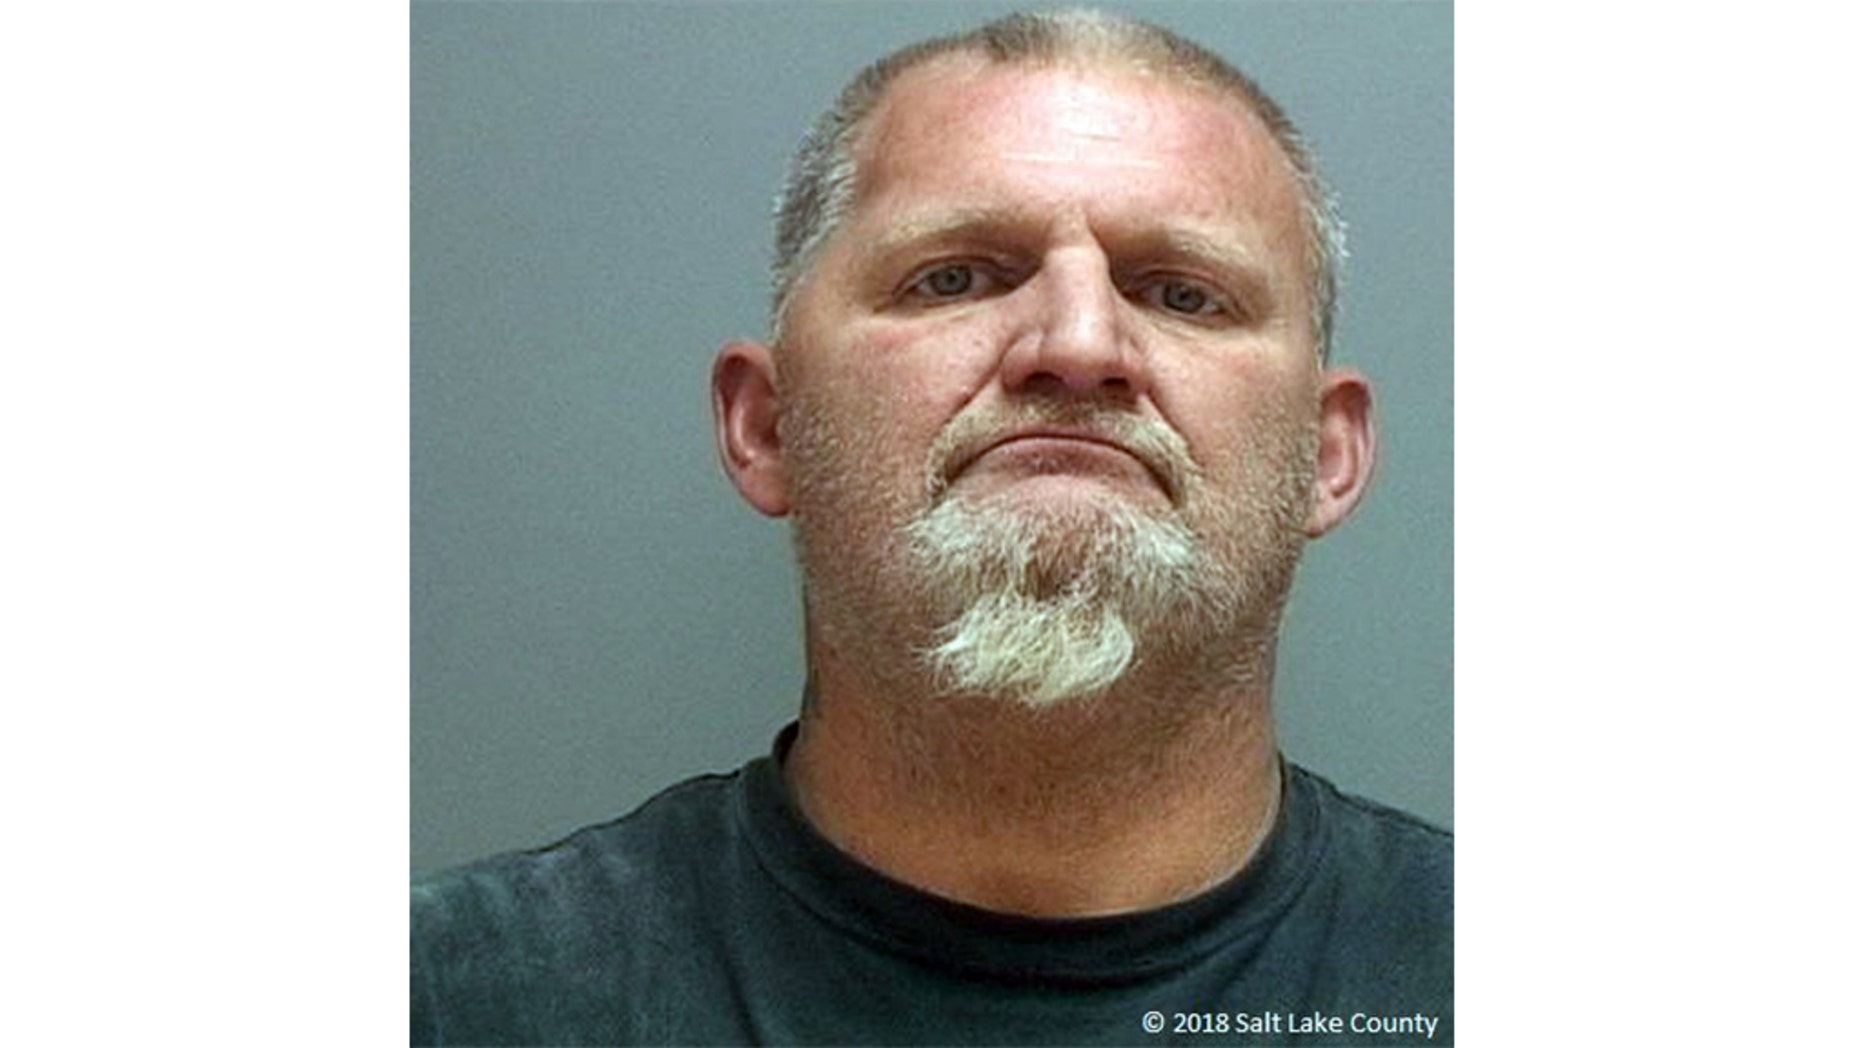 Stanley Jocelyn, 50, allegedly beat the dog with a hammer following the incident.